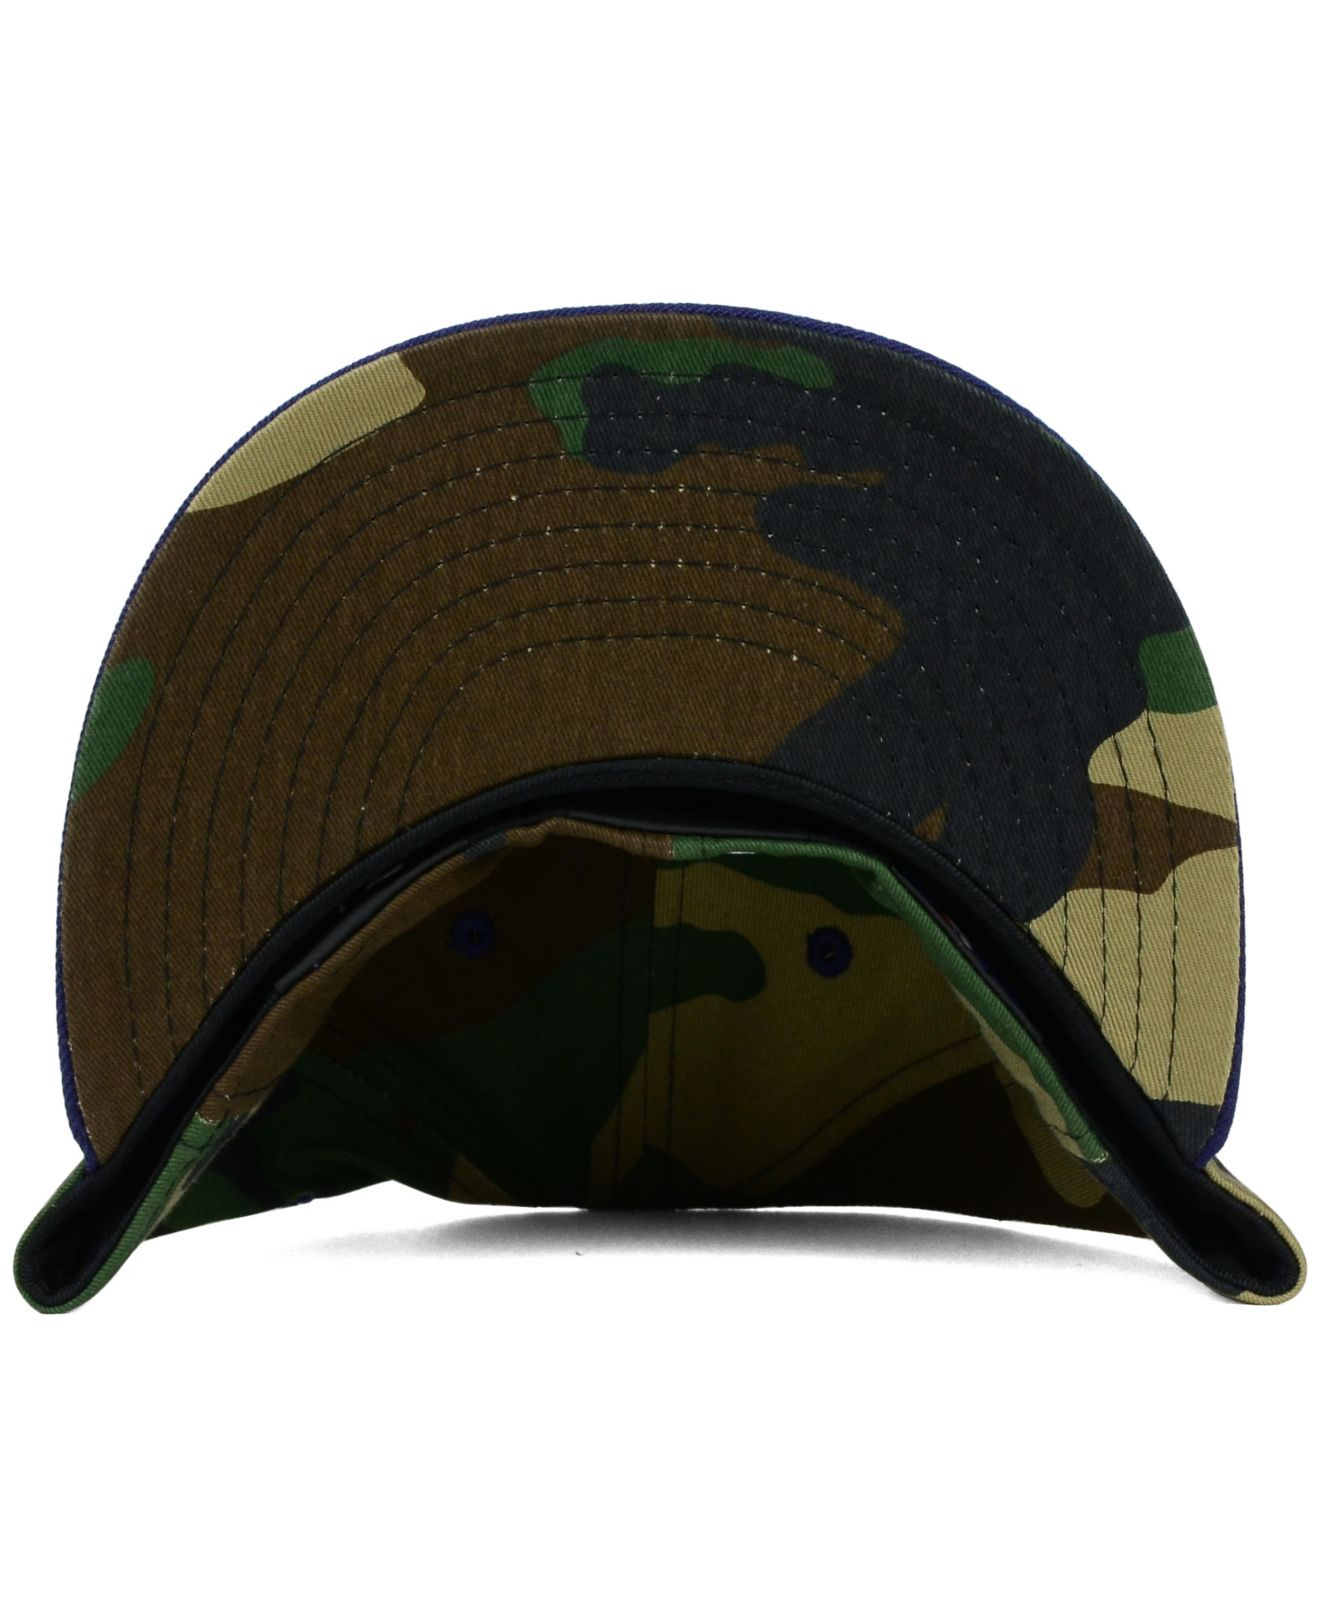 separation shoes 98ffe 91202 ... purchase lyst ktz cleveland indians camo pop 59fifty cap in green for  men bb48c 284ad